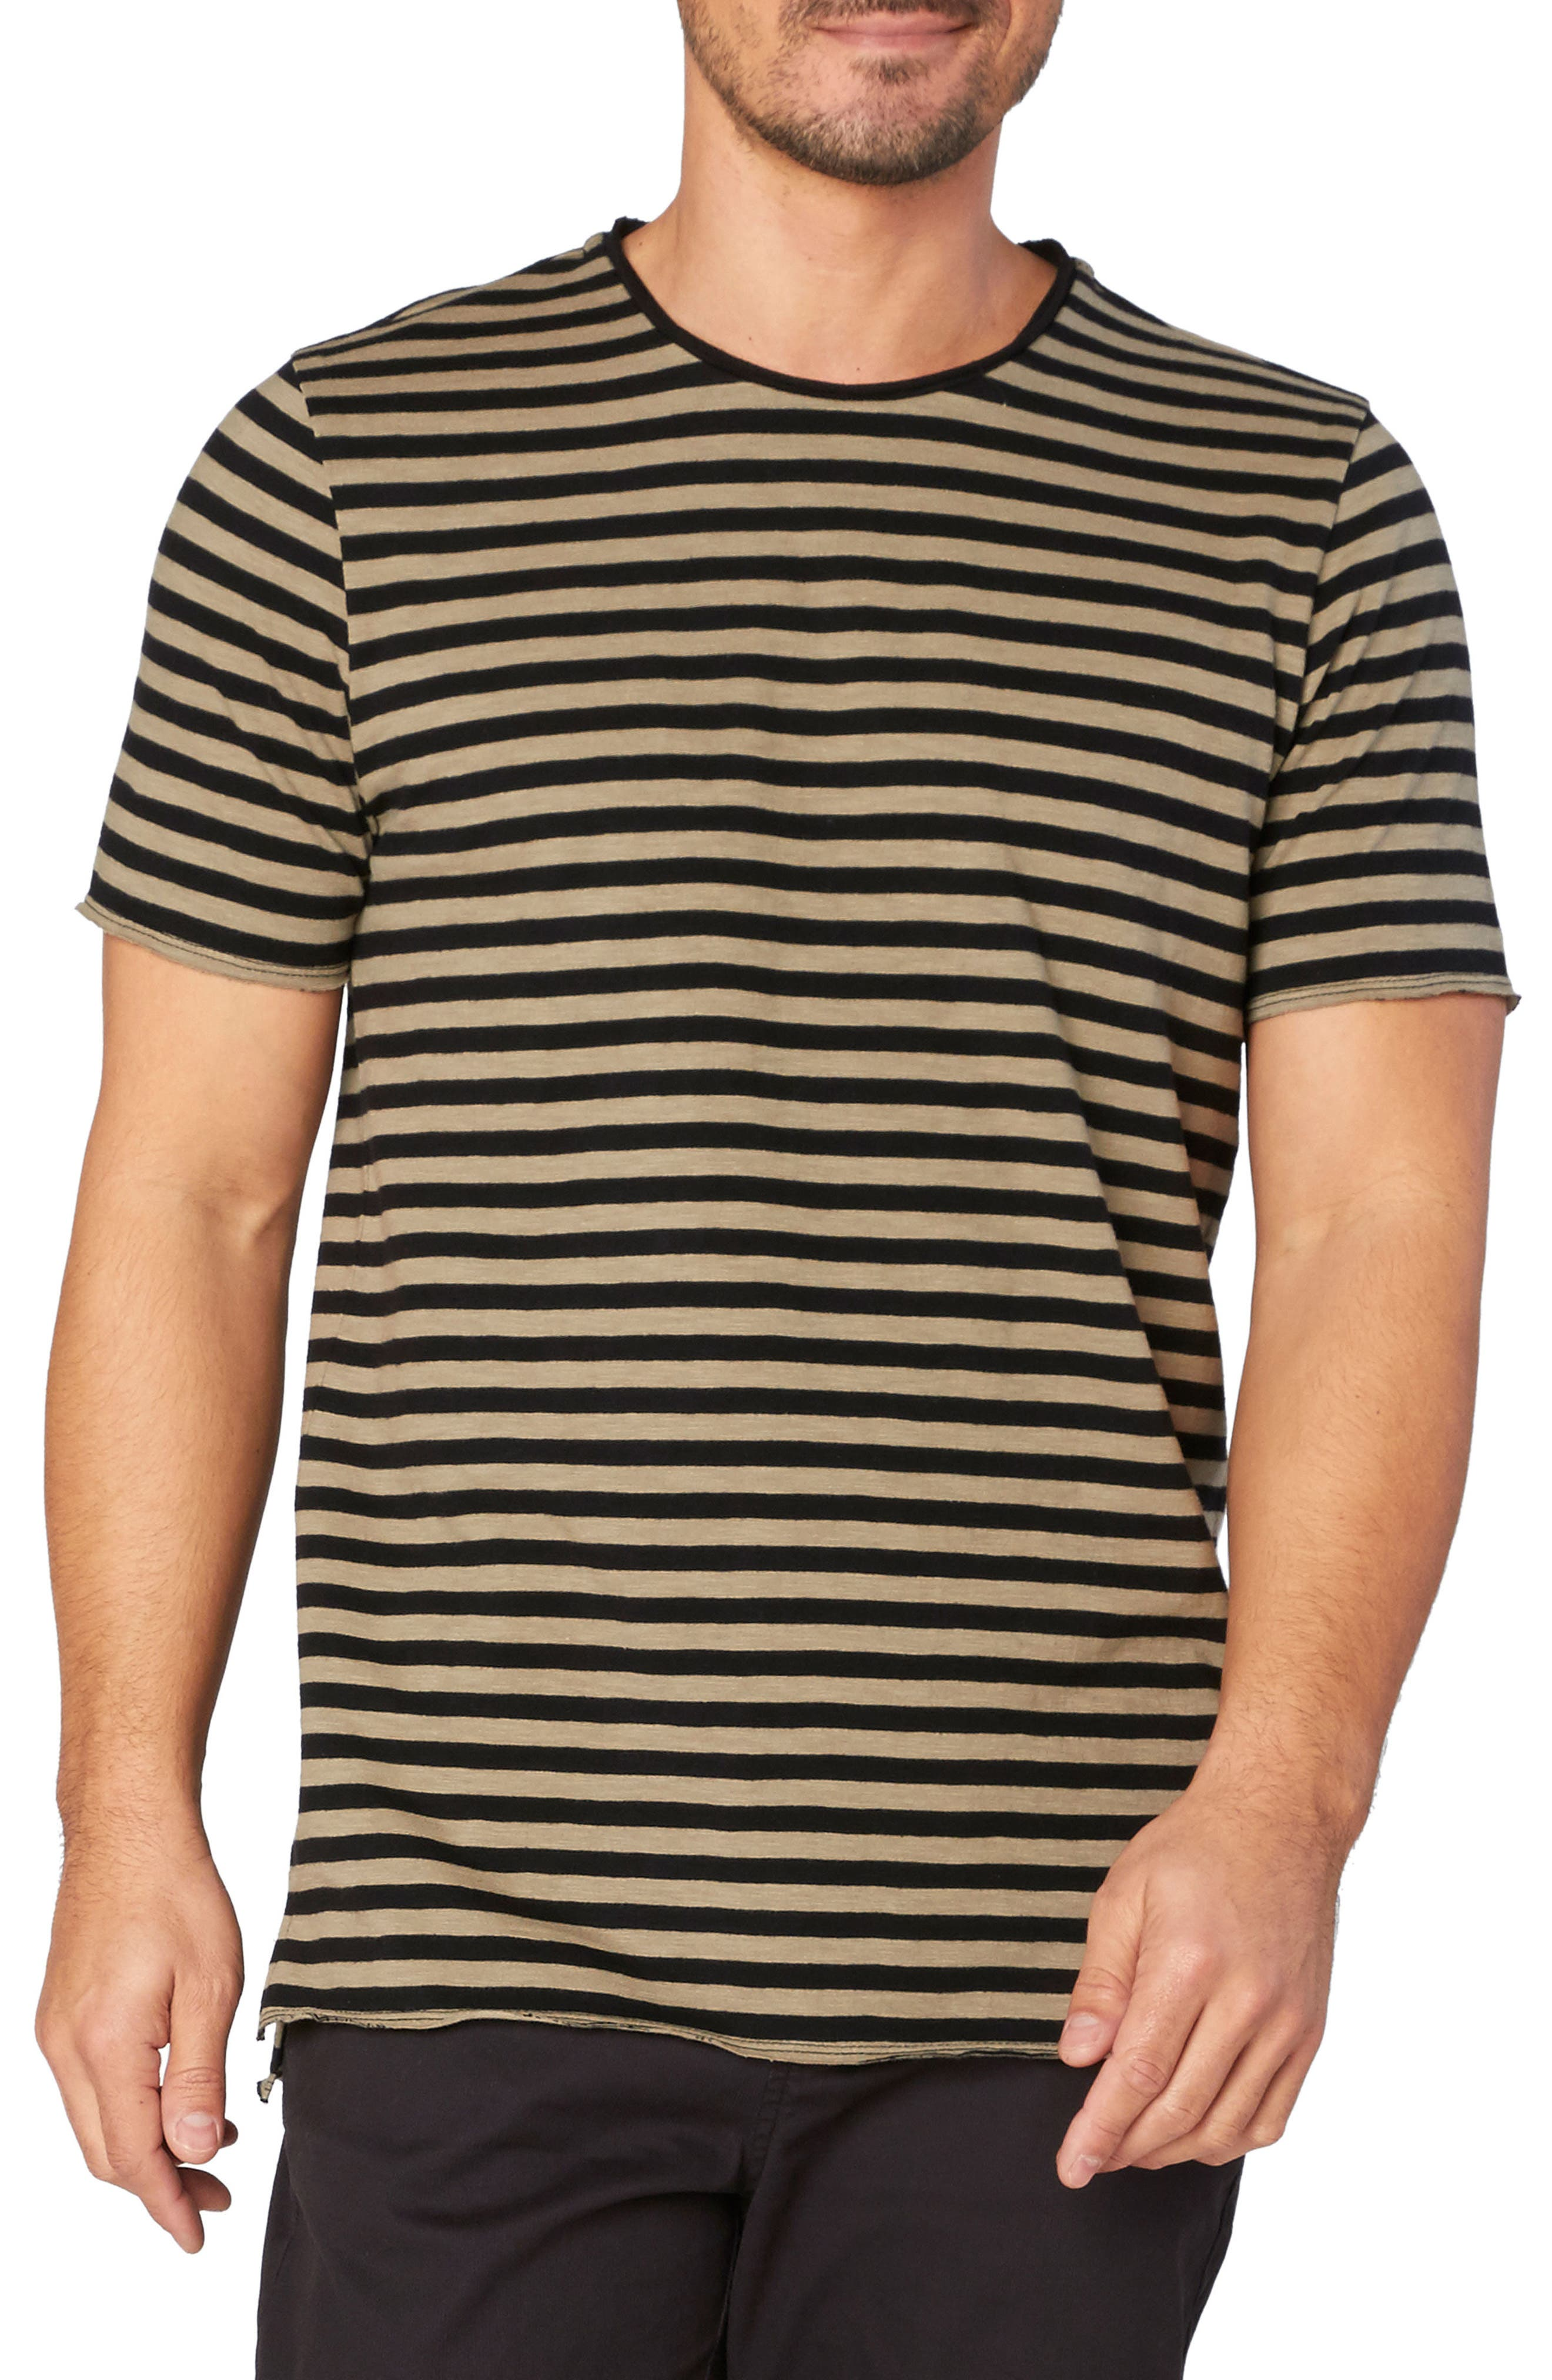 Kane Slub Stripe T-Shirt,                             Main thumbnail 1, color,                             Brindle